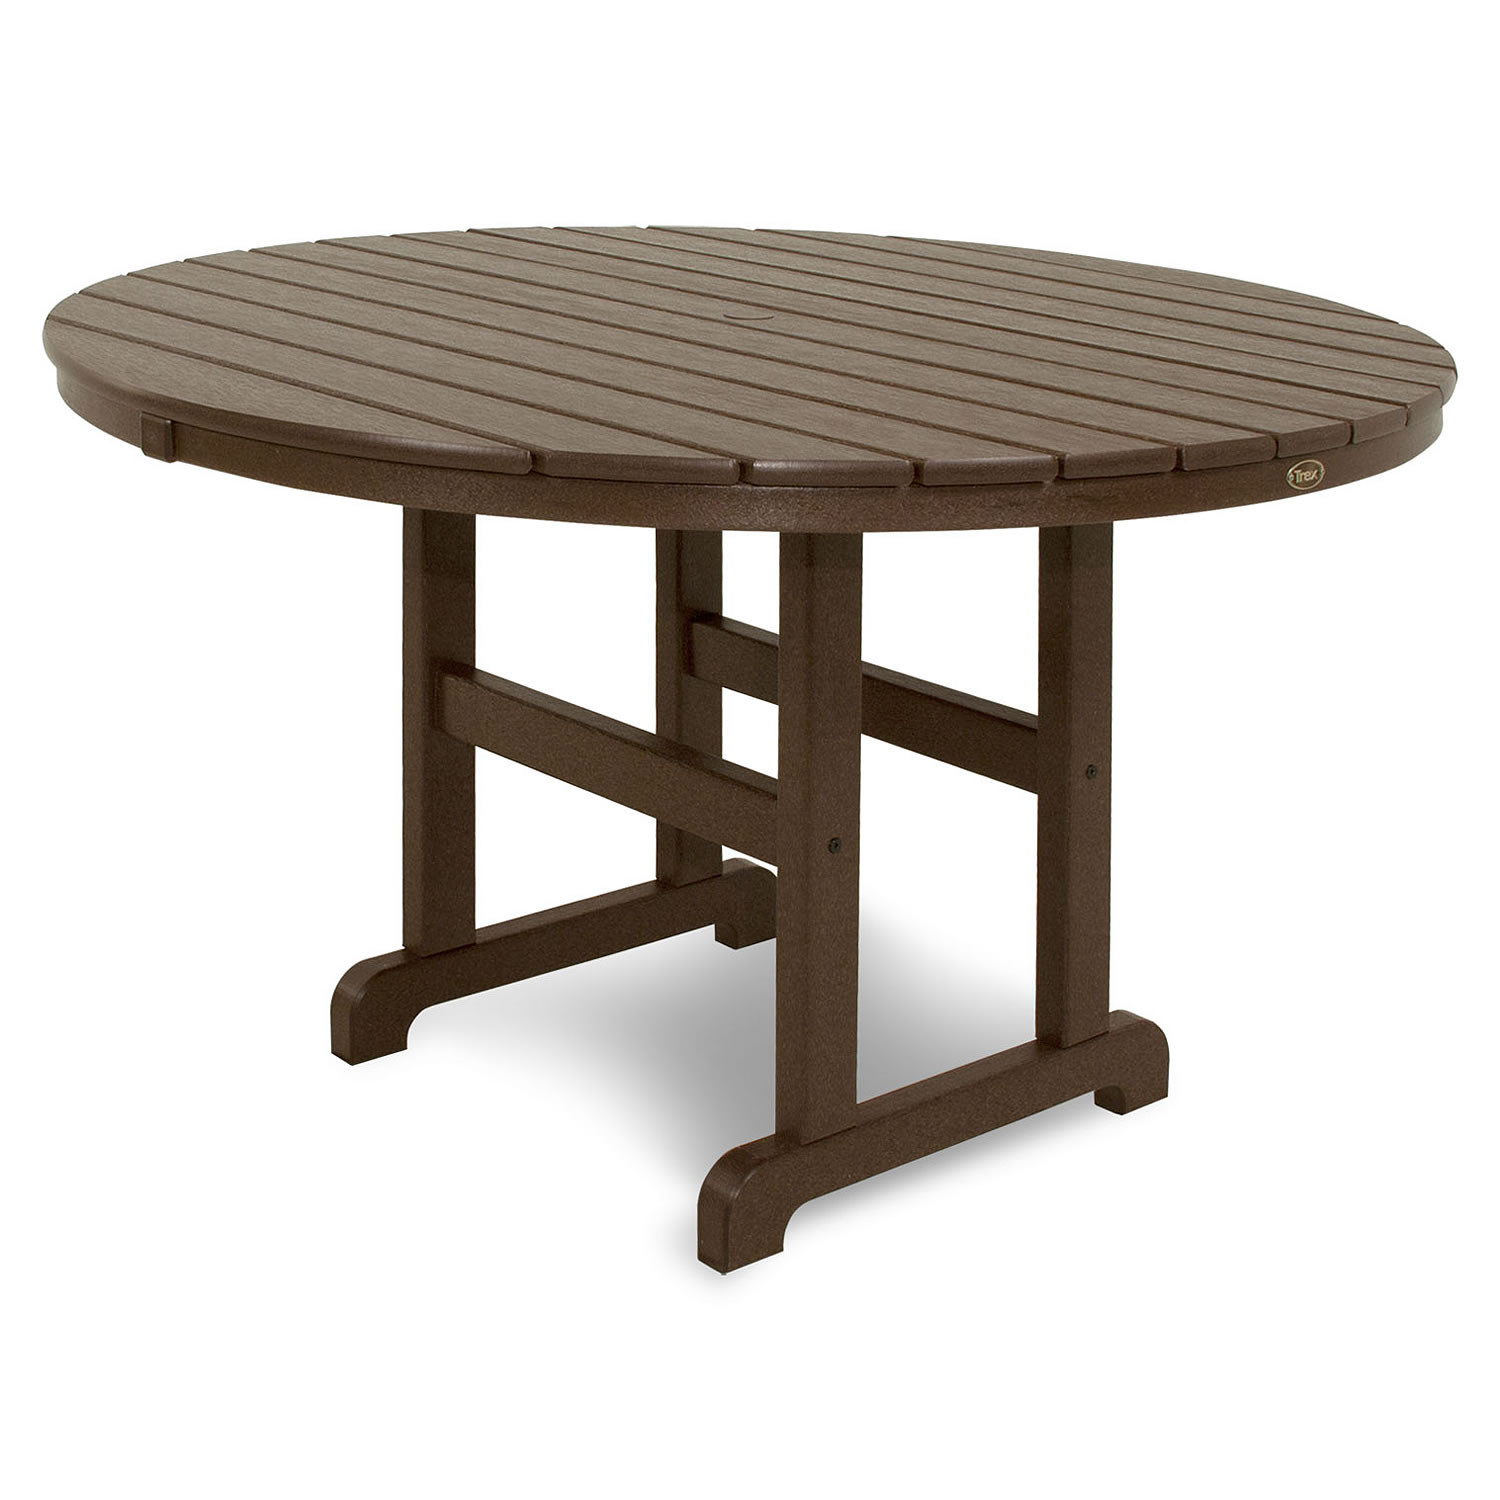 Trex Outdoor Furniture Monterey Bay 48 in Dining Table